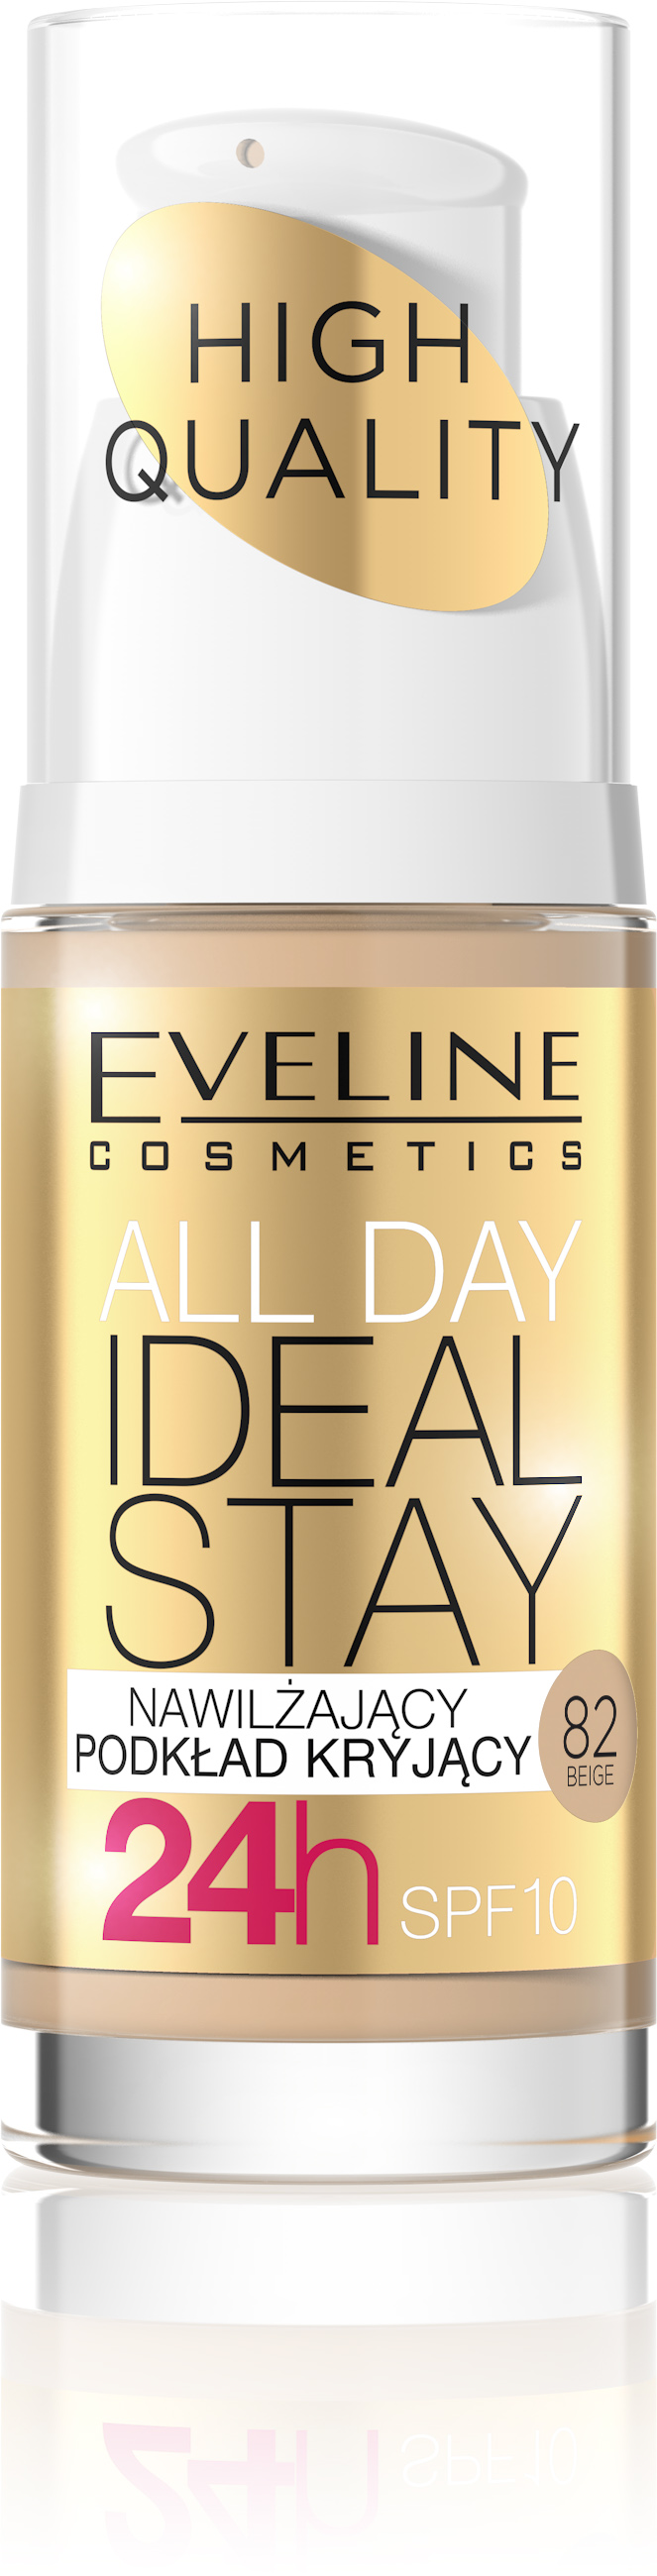 EVELINE krycí make-up all day IDEAL STAY 24h  82